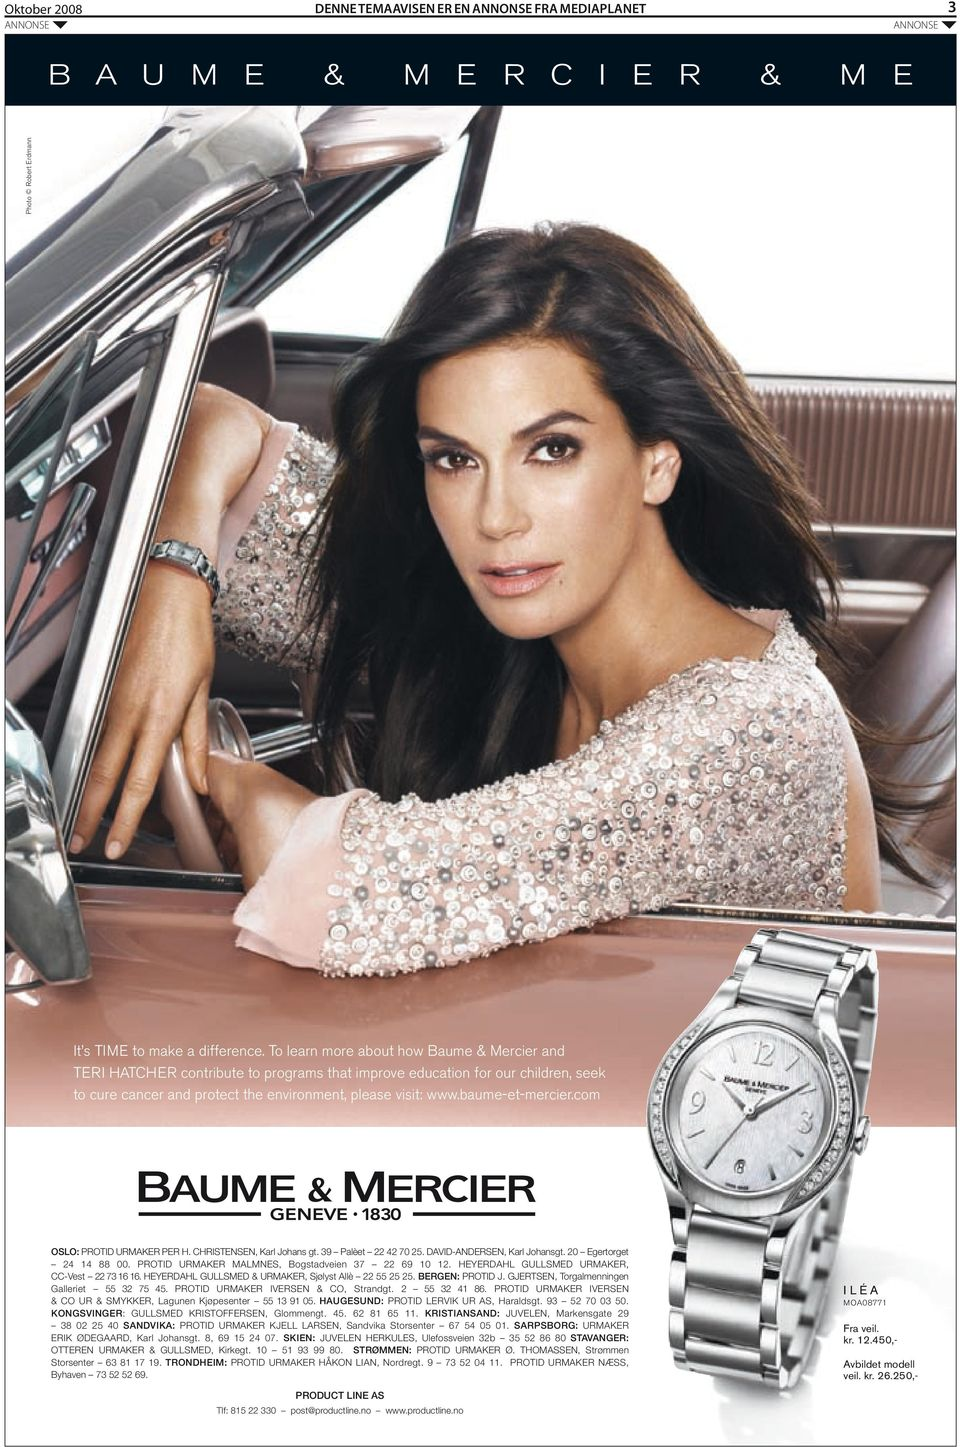 difference. To learn more about how Baume & Mercier and TERI HATCHER contribute to programs that improve education for our children, seek to cure cancer and protect the environment, please visit: www.